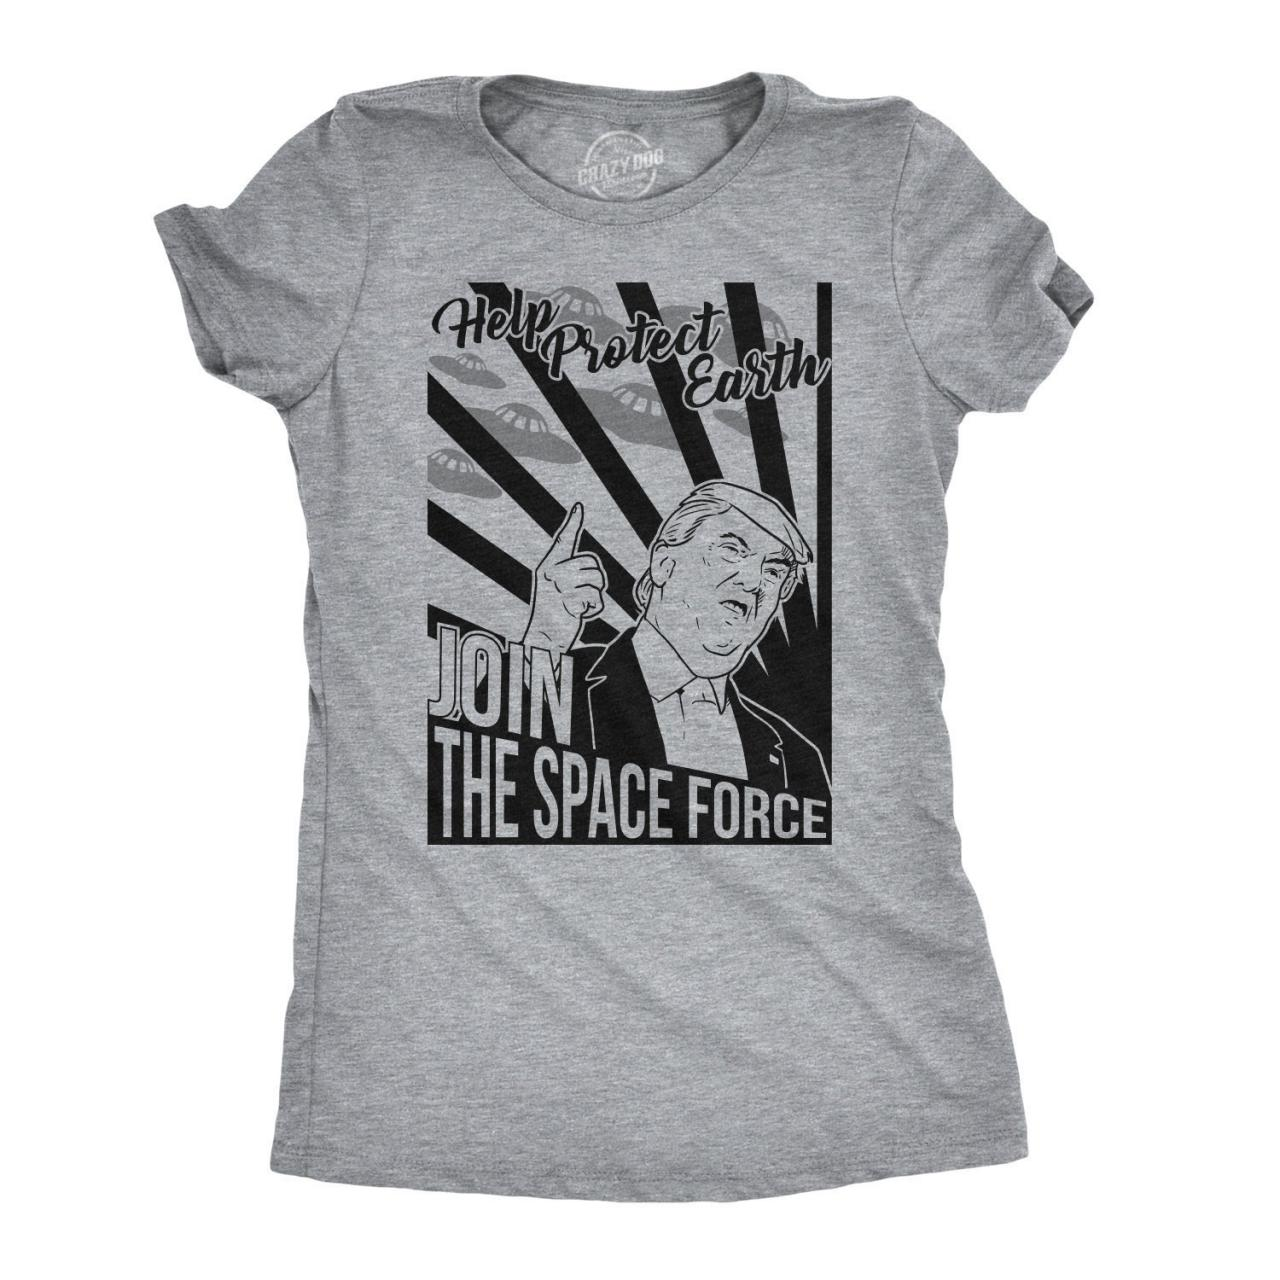 Sarcastic Trump Shirt, Political Shirts, Protester Shirts, Anti Trump Shirt, Cool Shirt, Womens Graphic Tees, Join The Space Force Trump